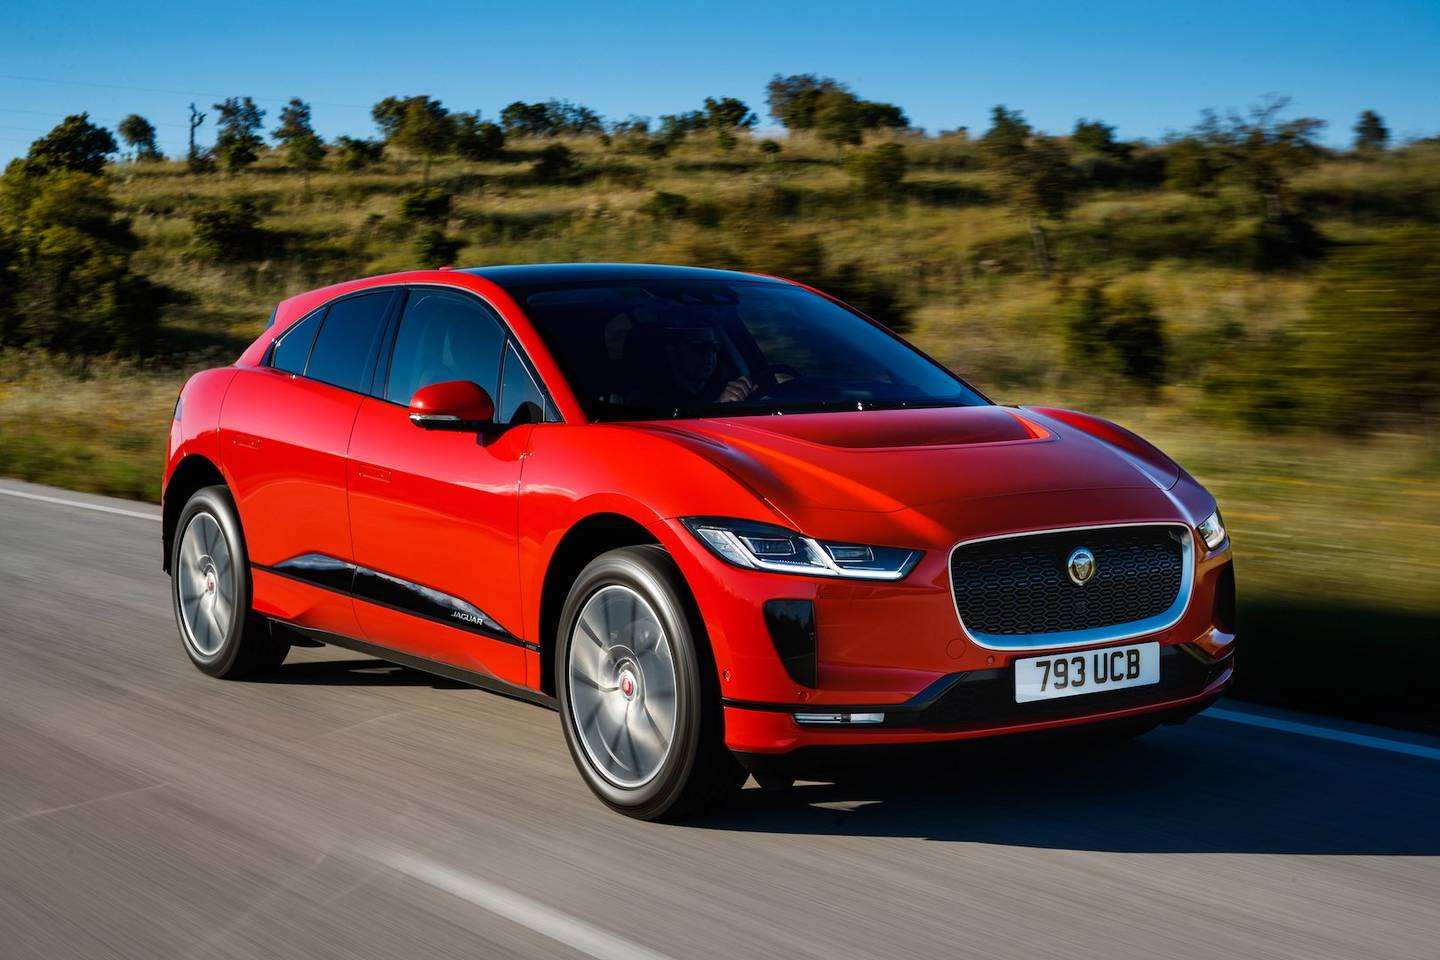 63 New 2019 Jaguar I Pace Review Price and Review with 2019 Jaguar I Pace Review